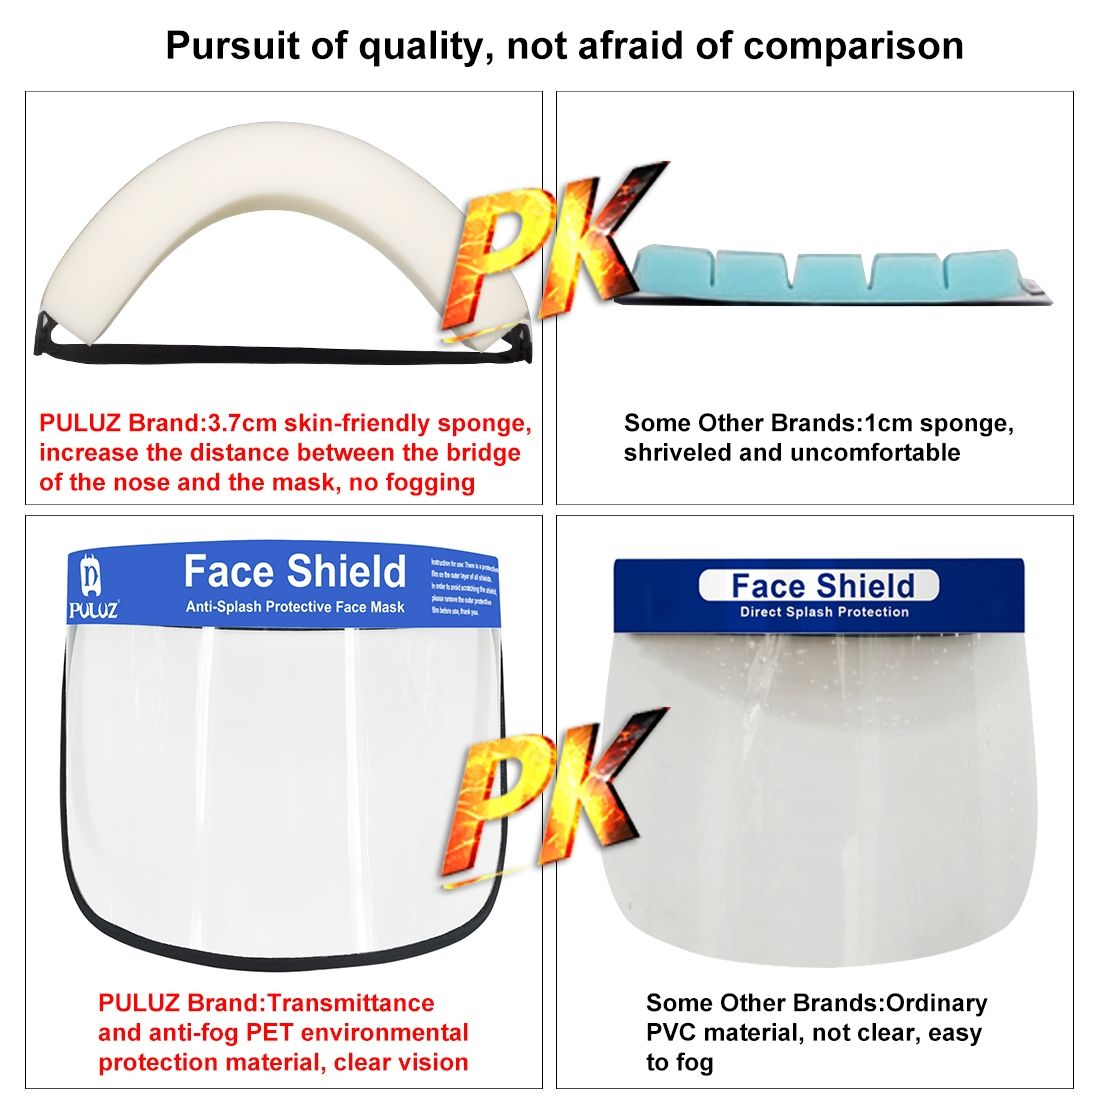 Face Shield Australia Apusworld Com Au In 2020 Face Shield